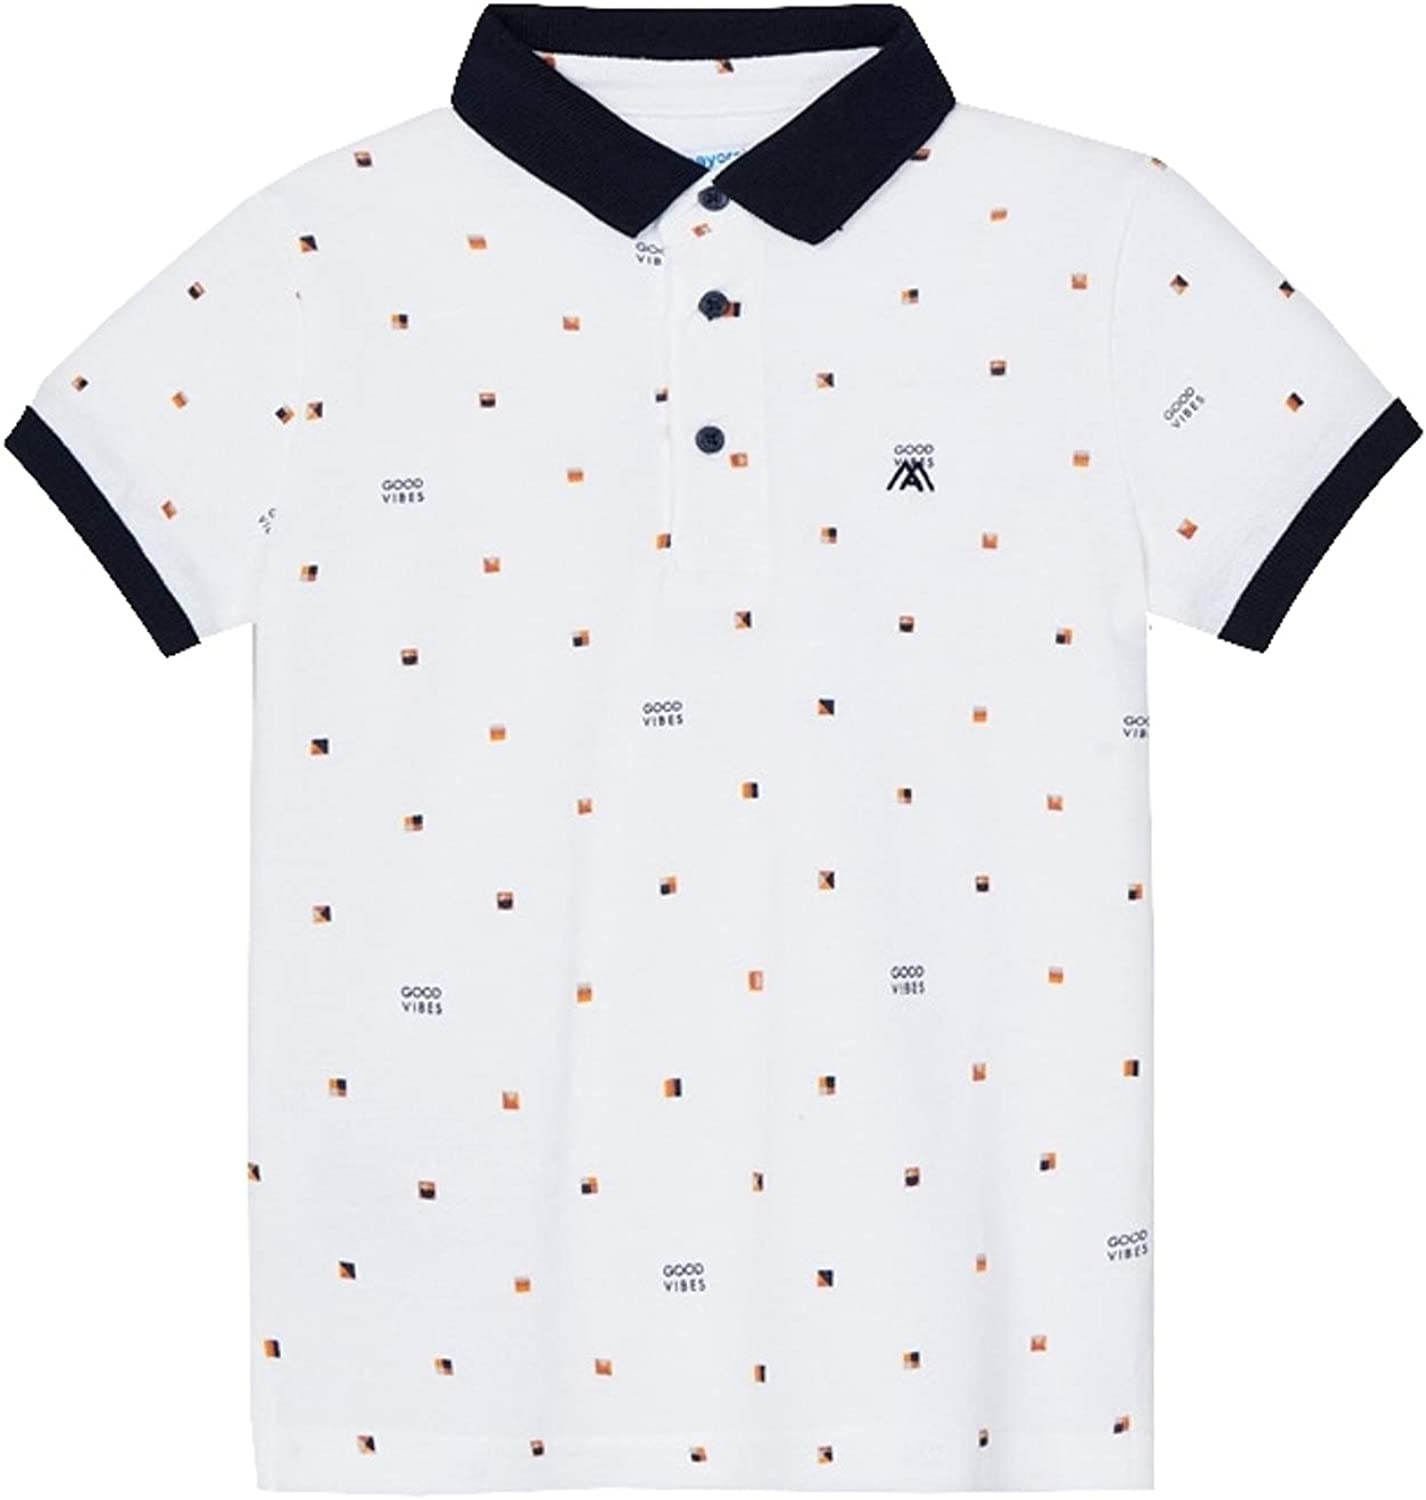 Mayoral - S/s Polo for Boys - 3106, White